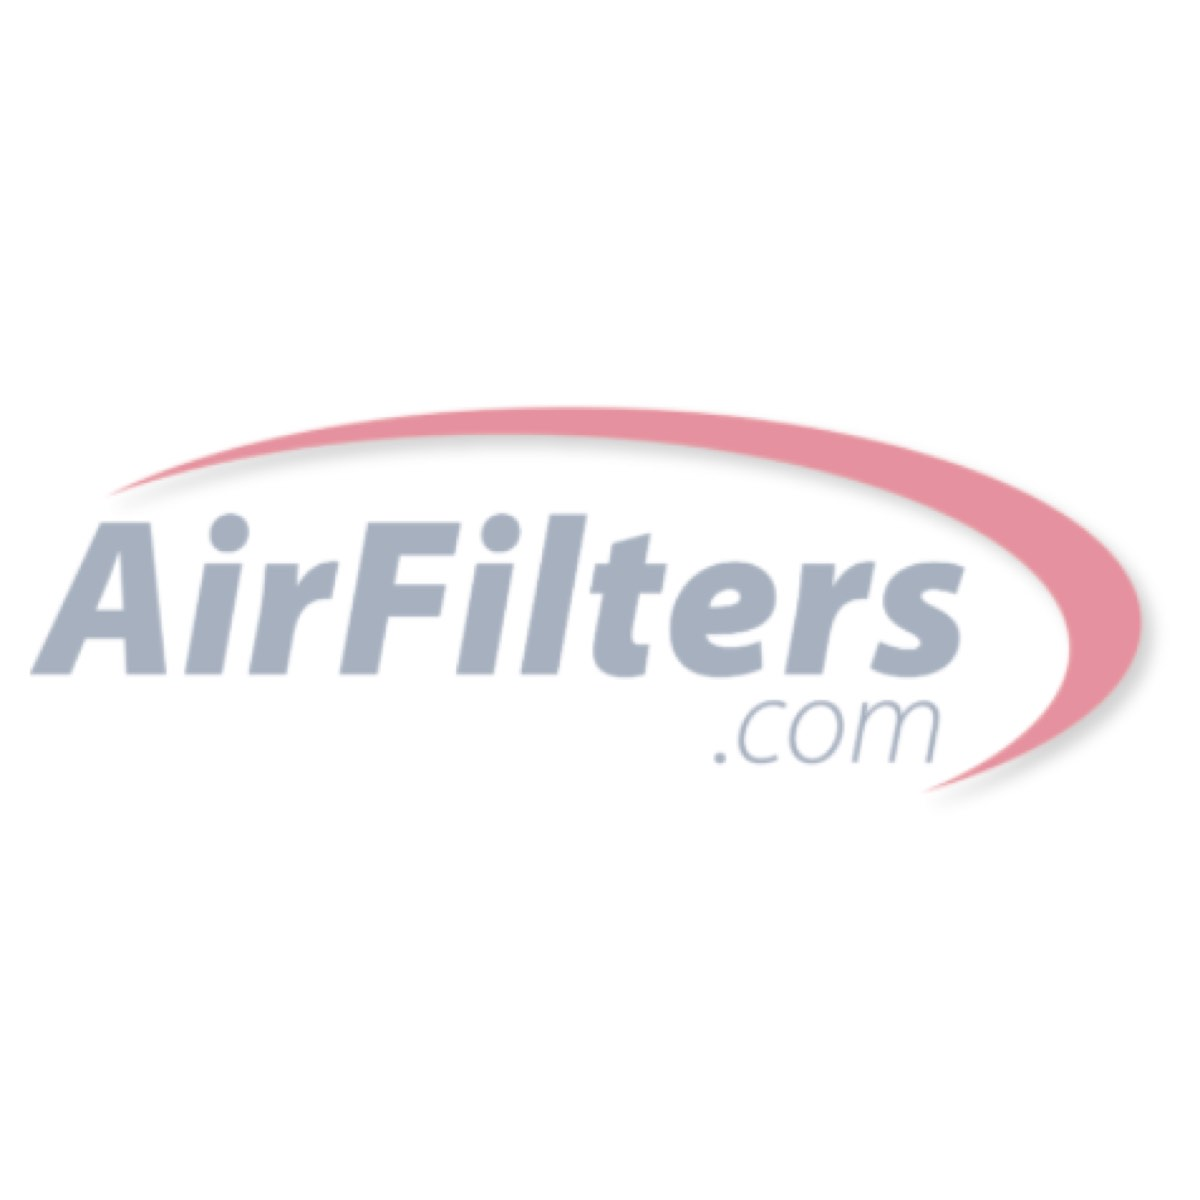 Electro-Air® 20x26x5 Furnace Filters by Accumulair®